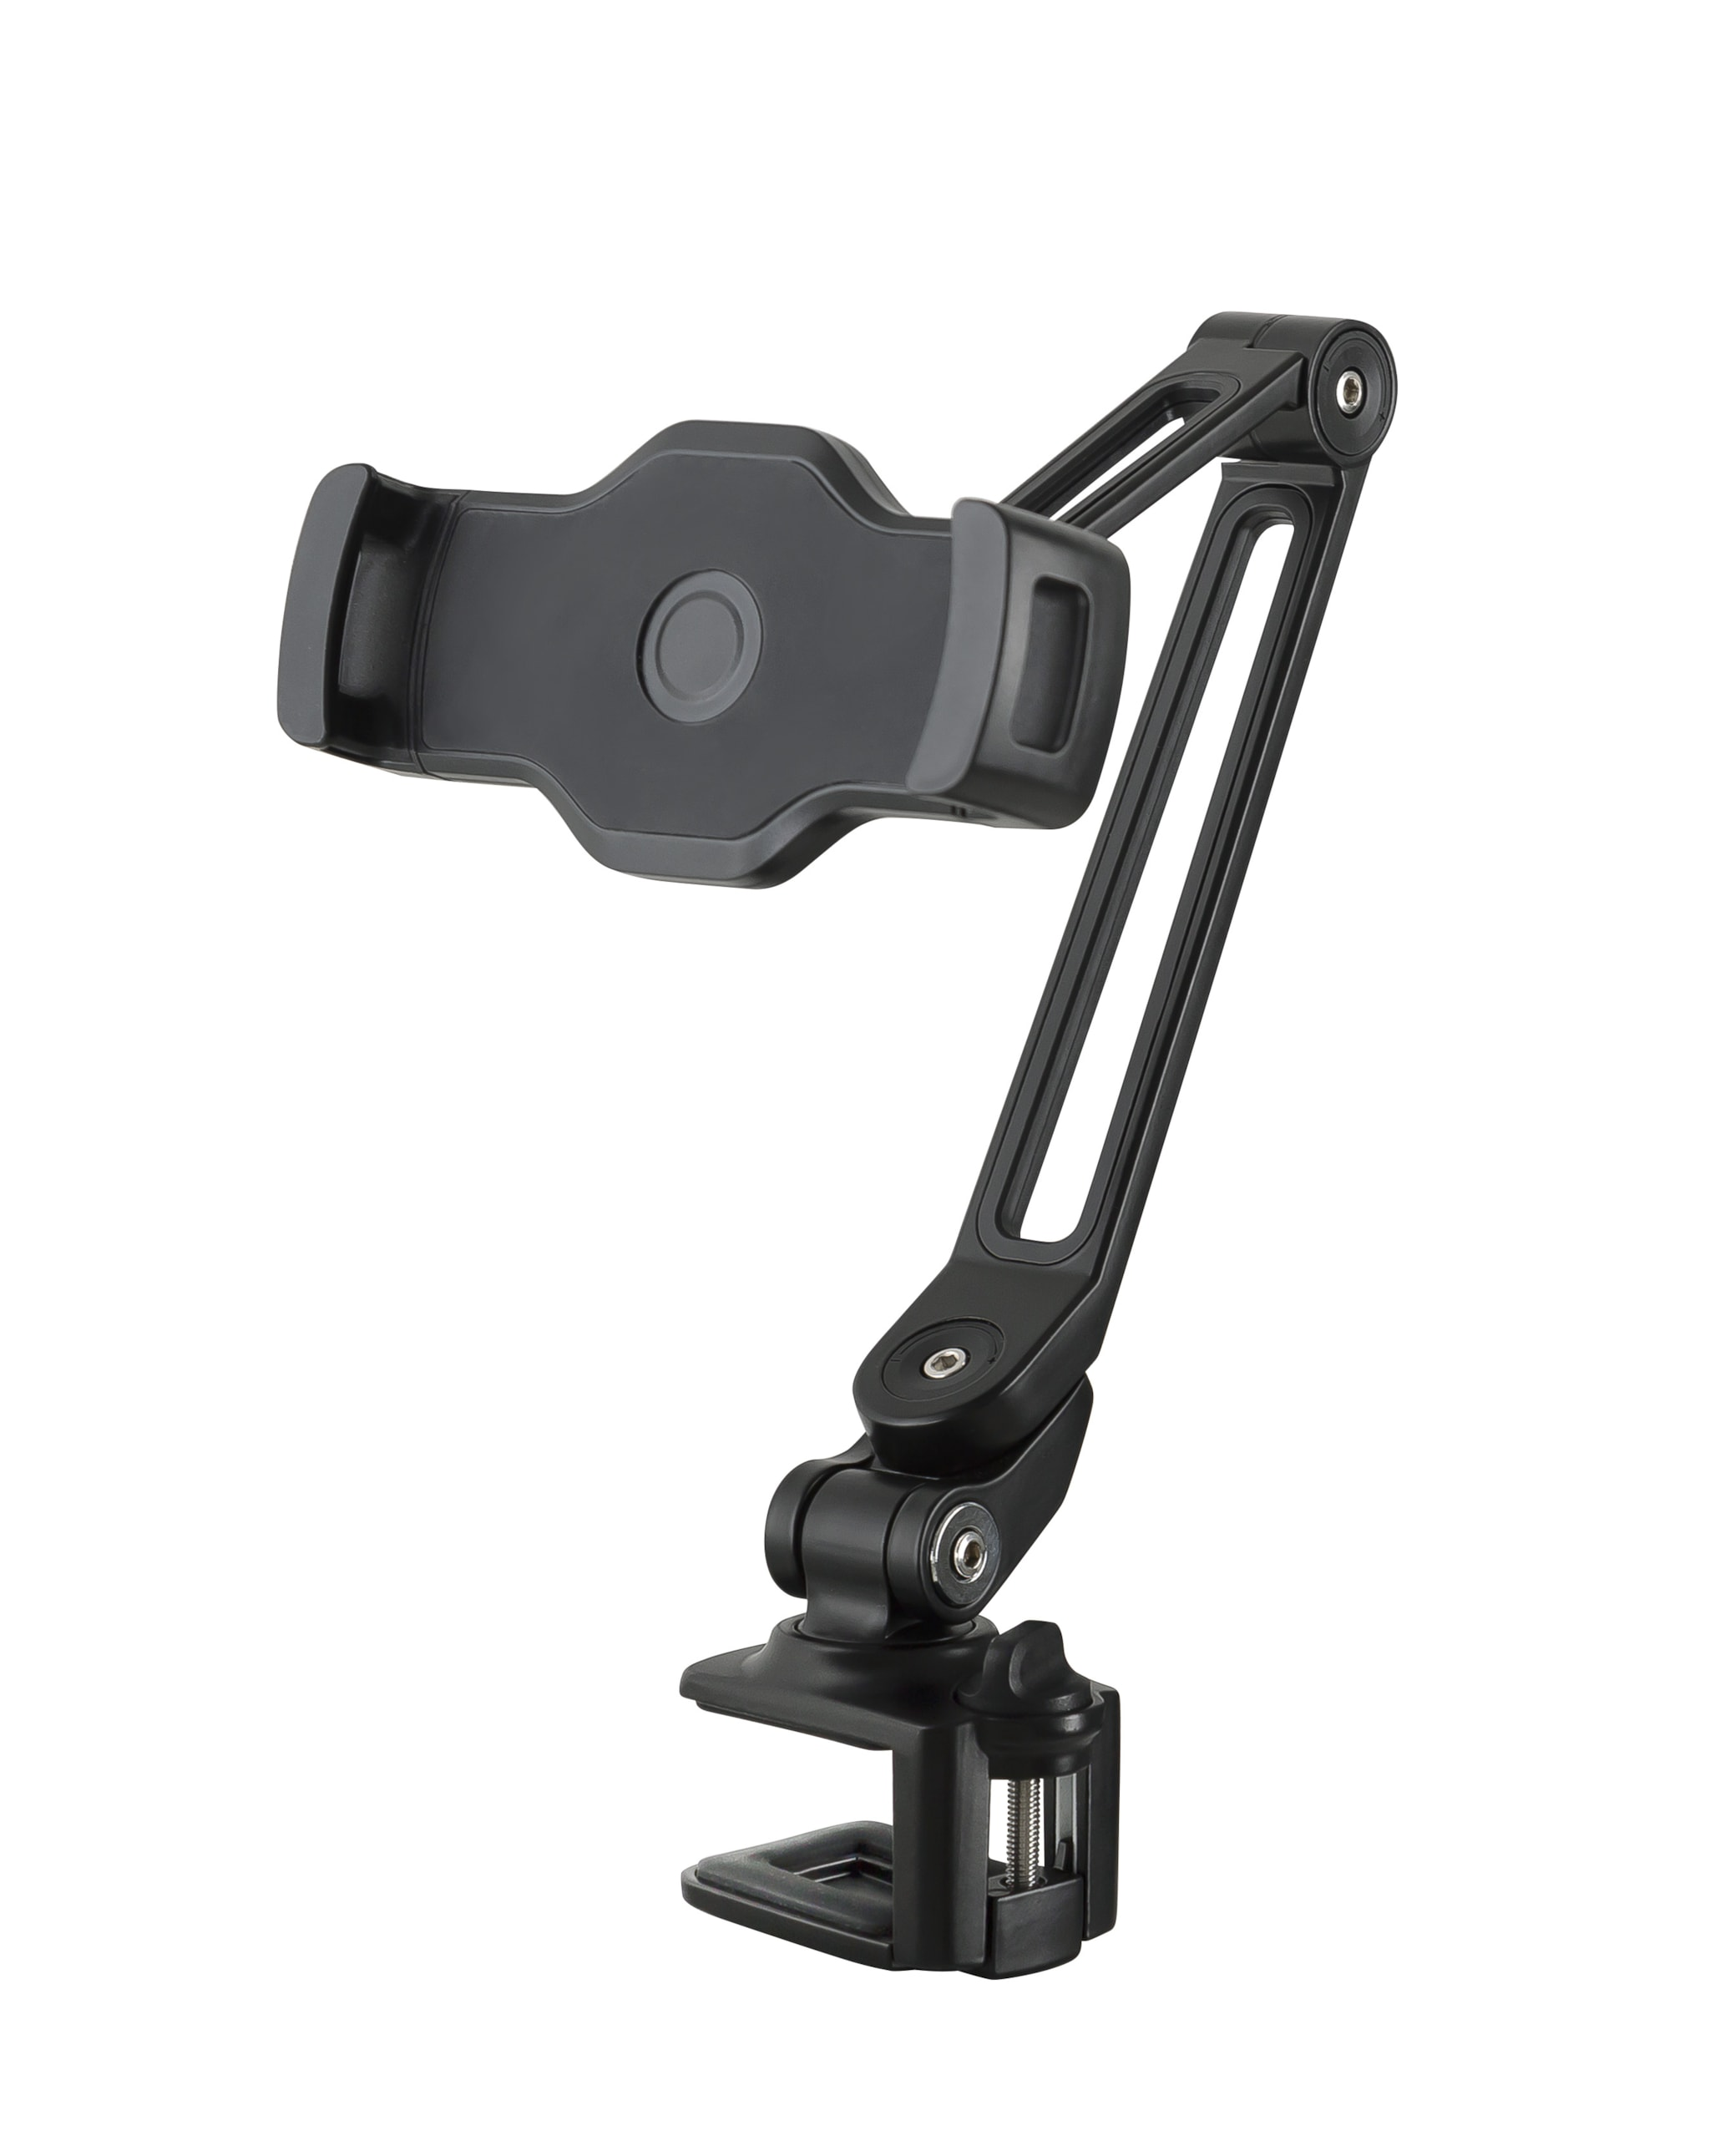 KM19805 - Smartphone and tablet PC holder